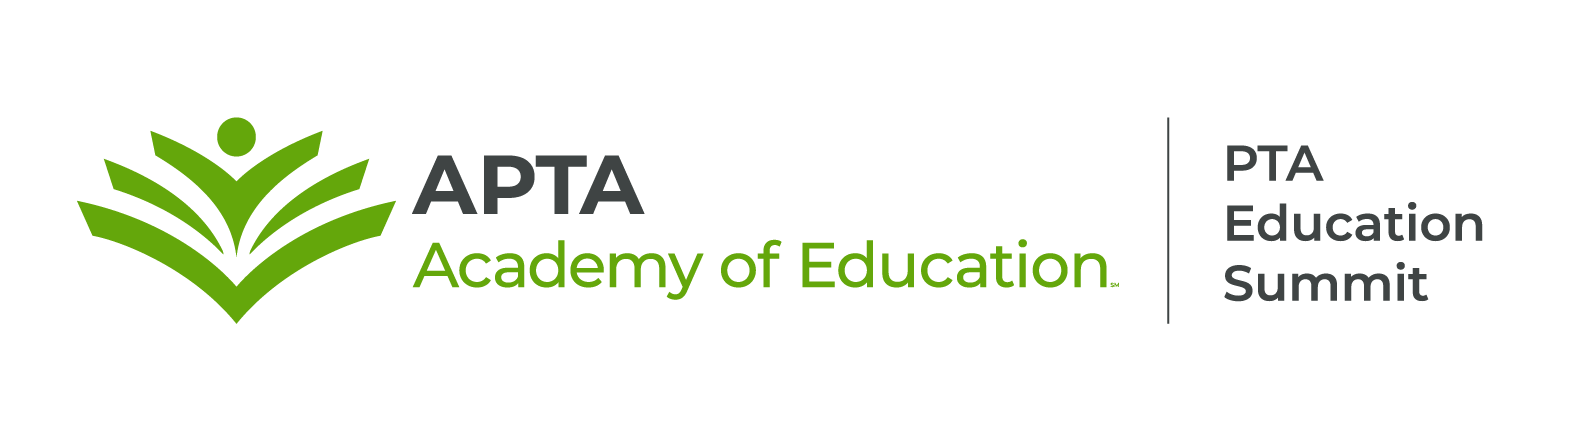 https://aptaeducation.org/apte_files/frequently%20accessed%20files/4AF67DD6-C60A-AC11-E8914B282604A5B3.png